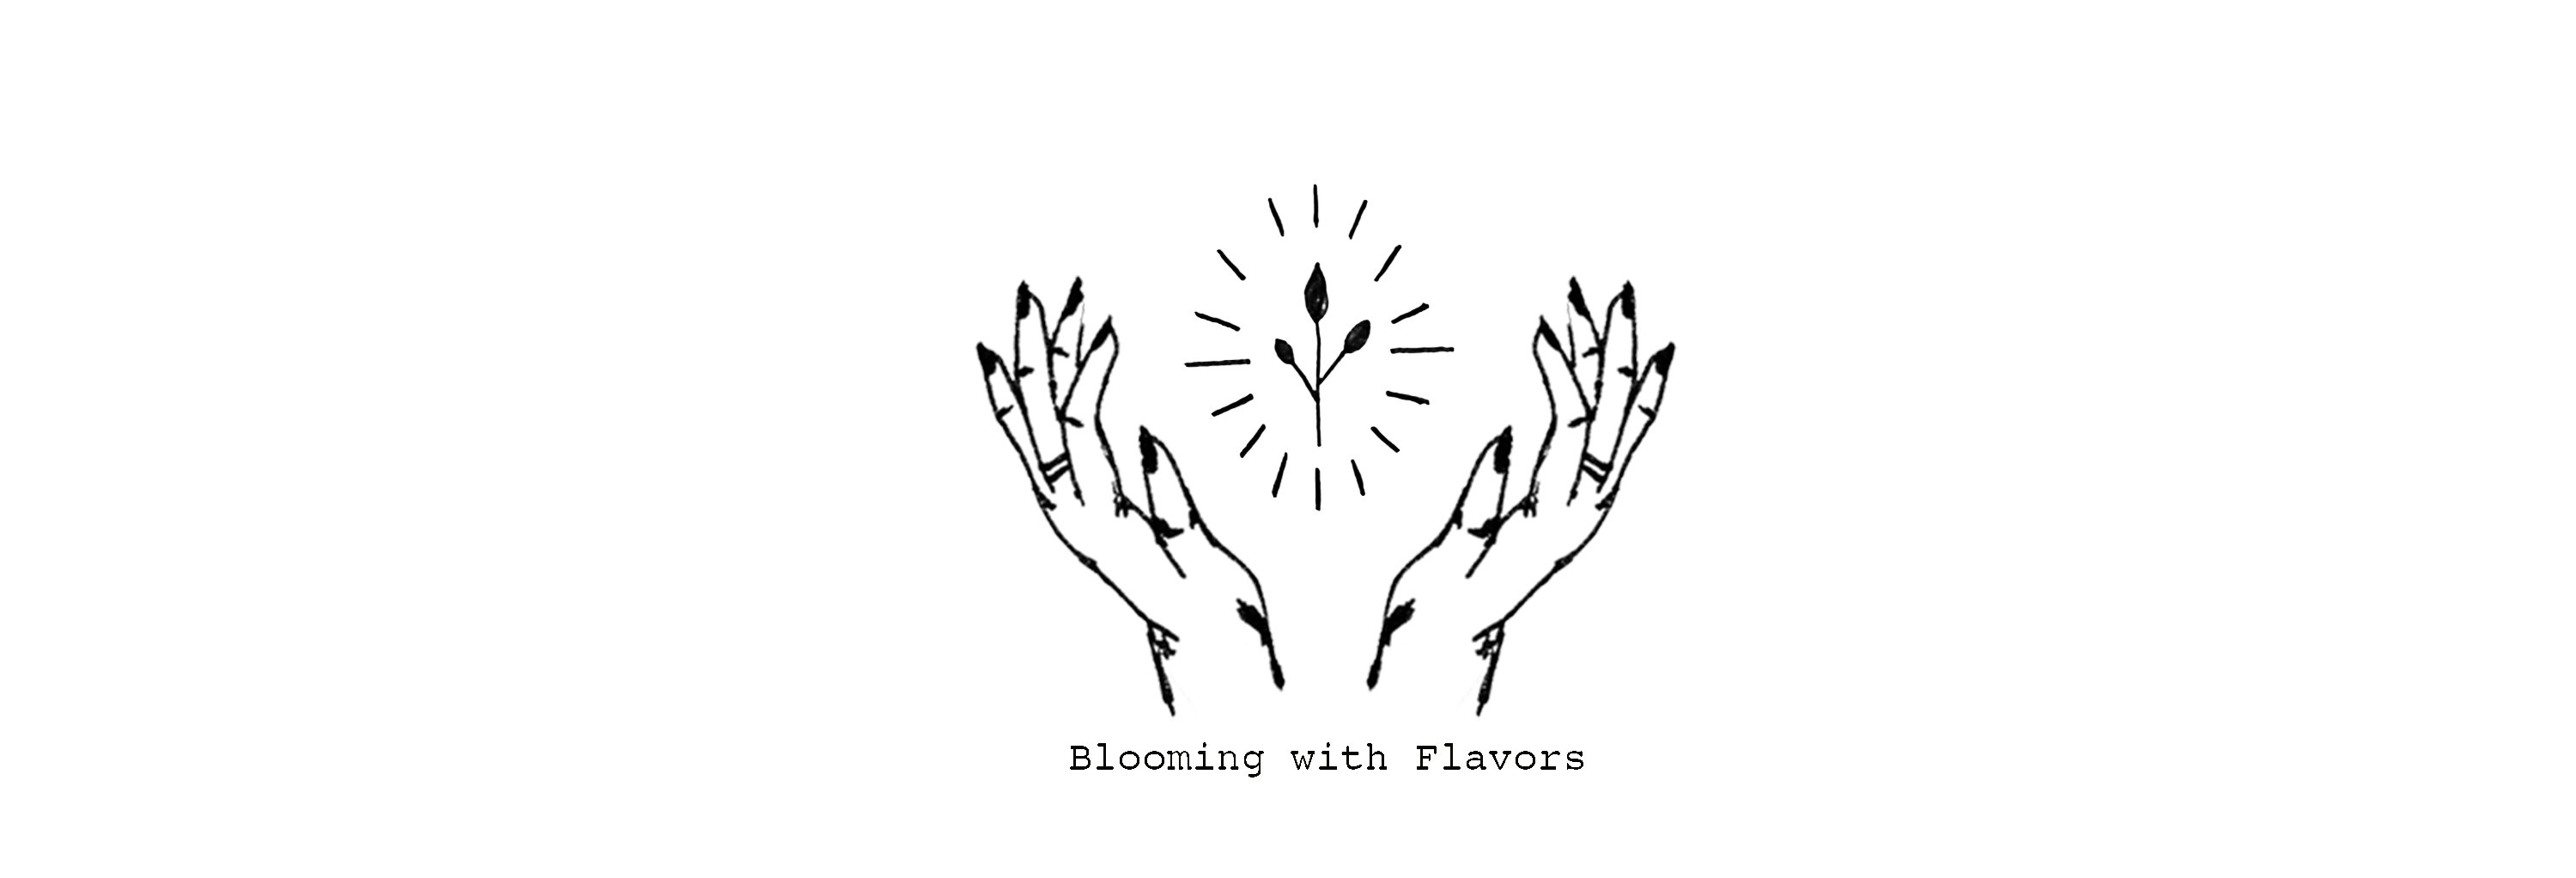 bloomingwithflavors.com